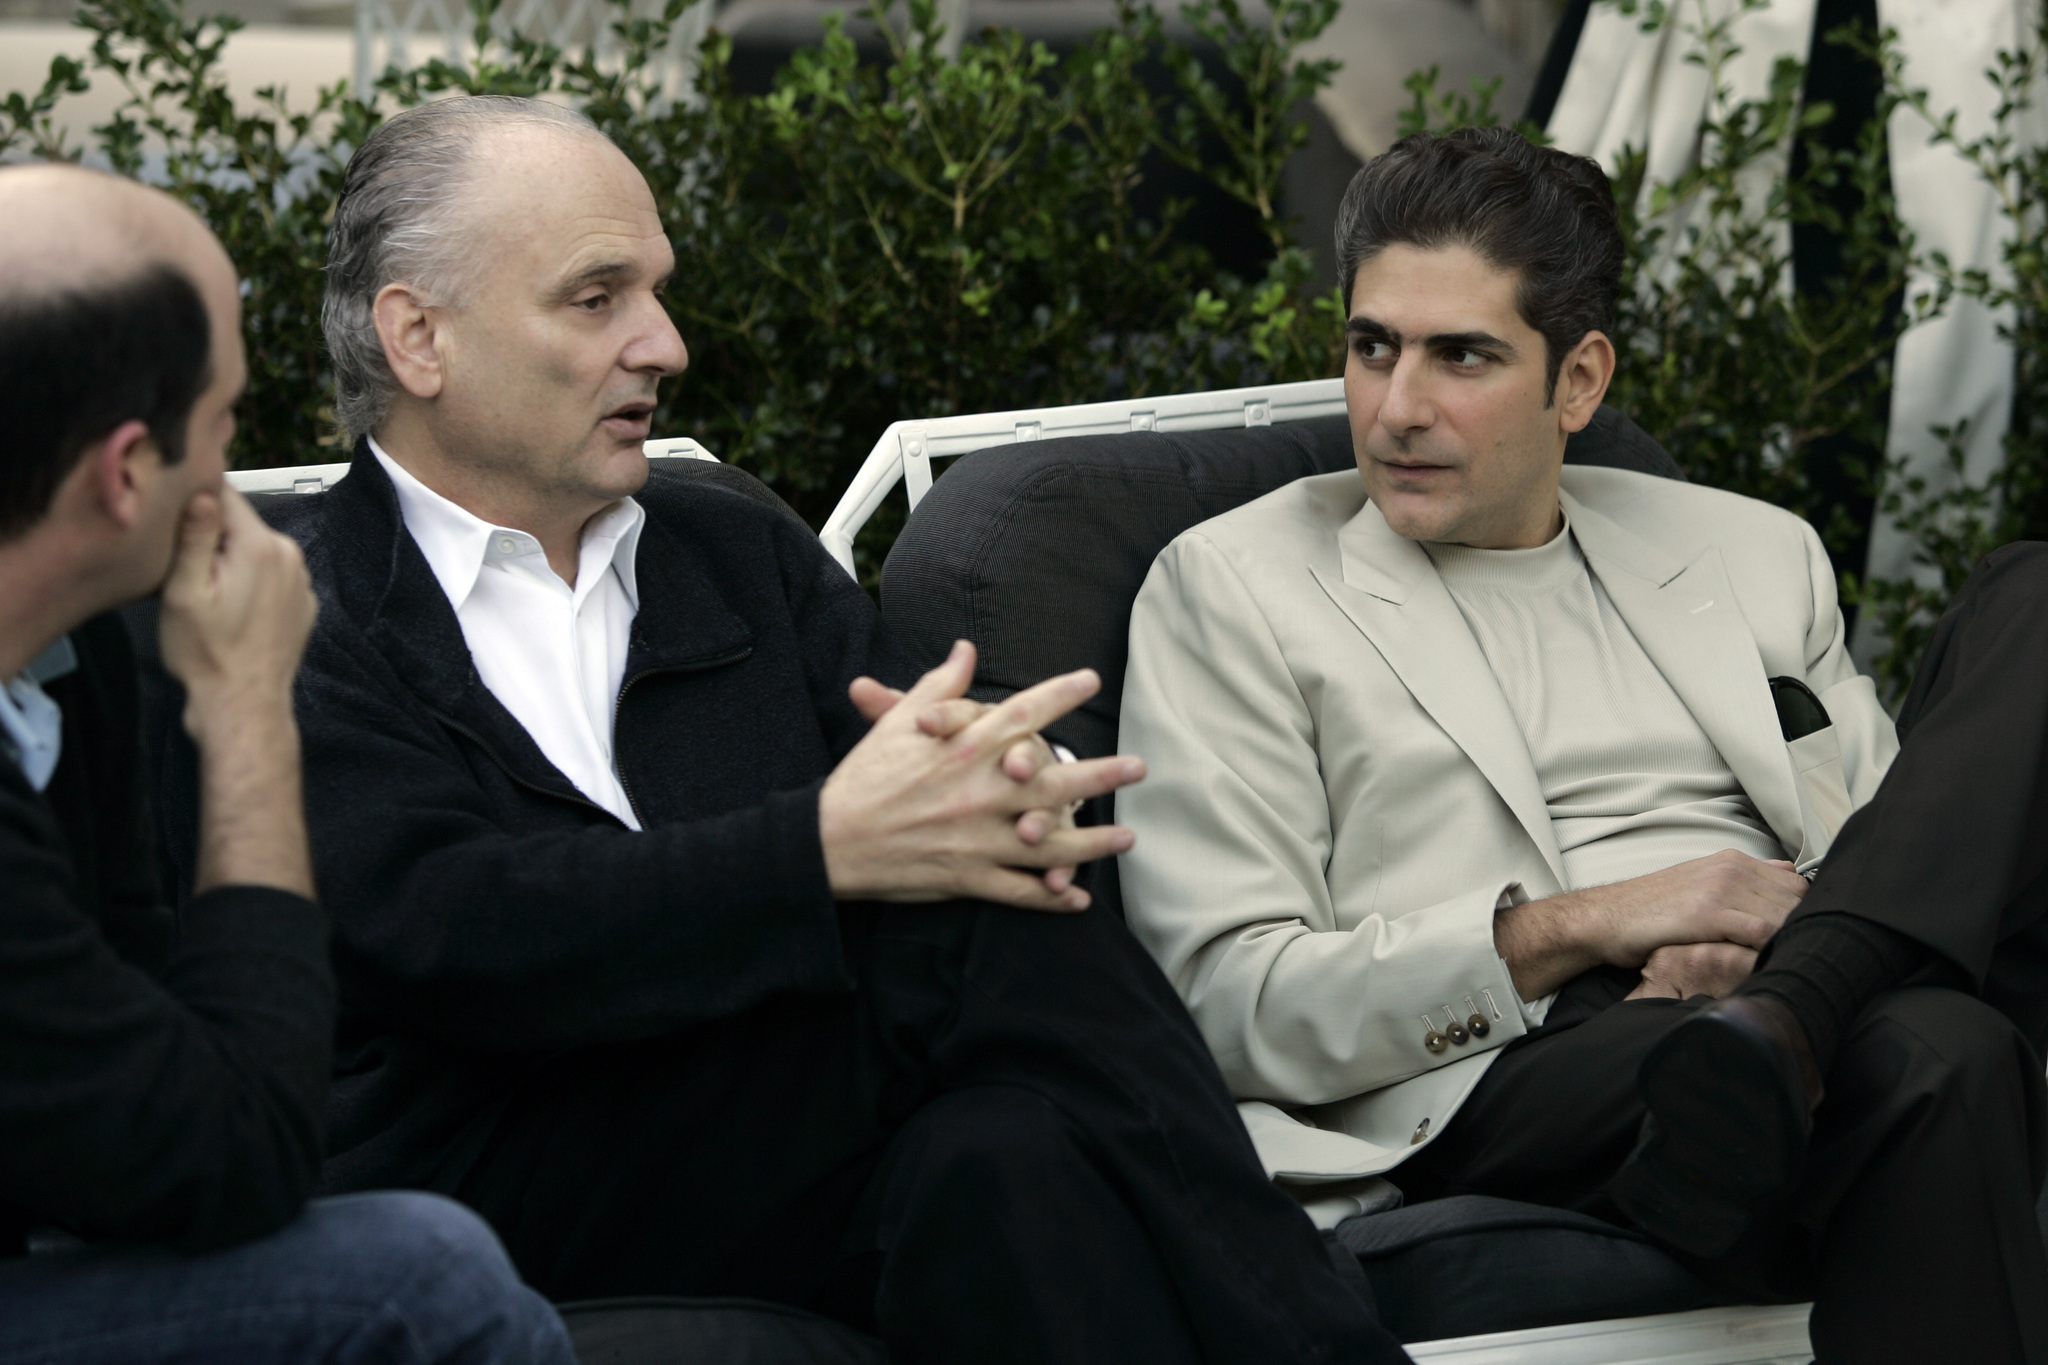 David Chase and Michael Imperioli in The Sopranos (1999)